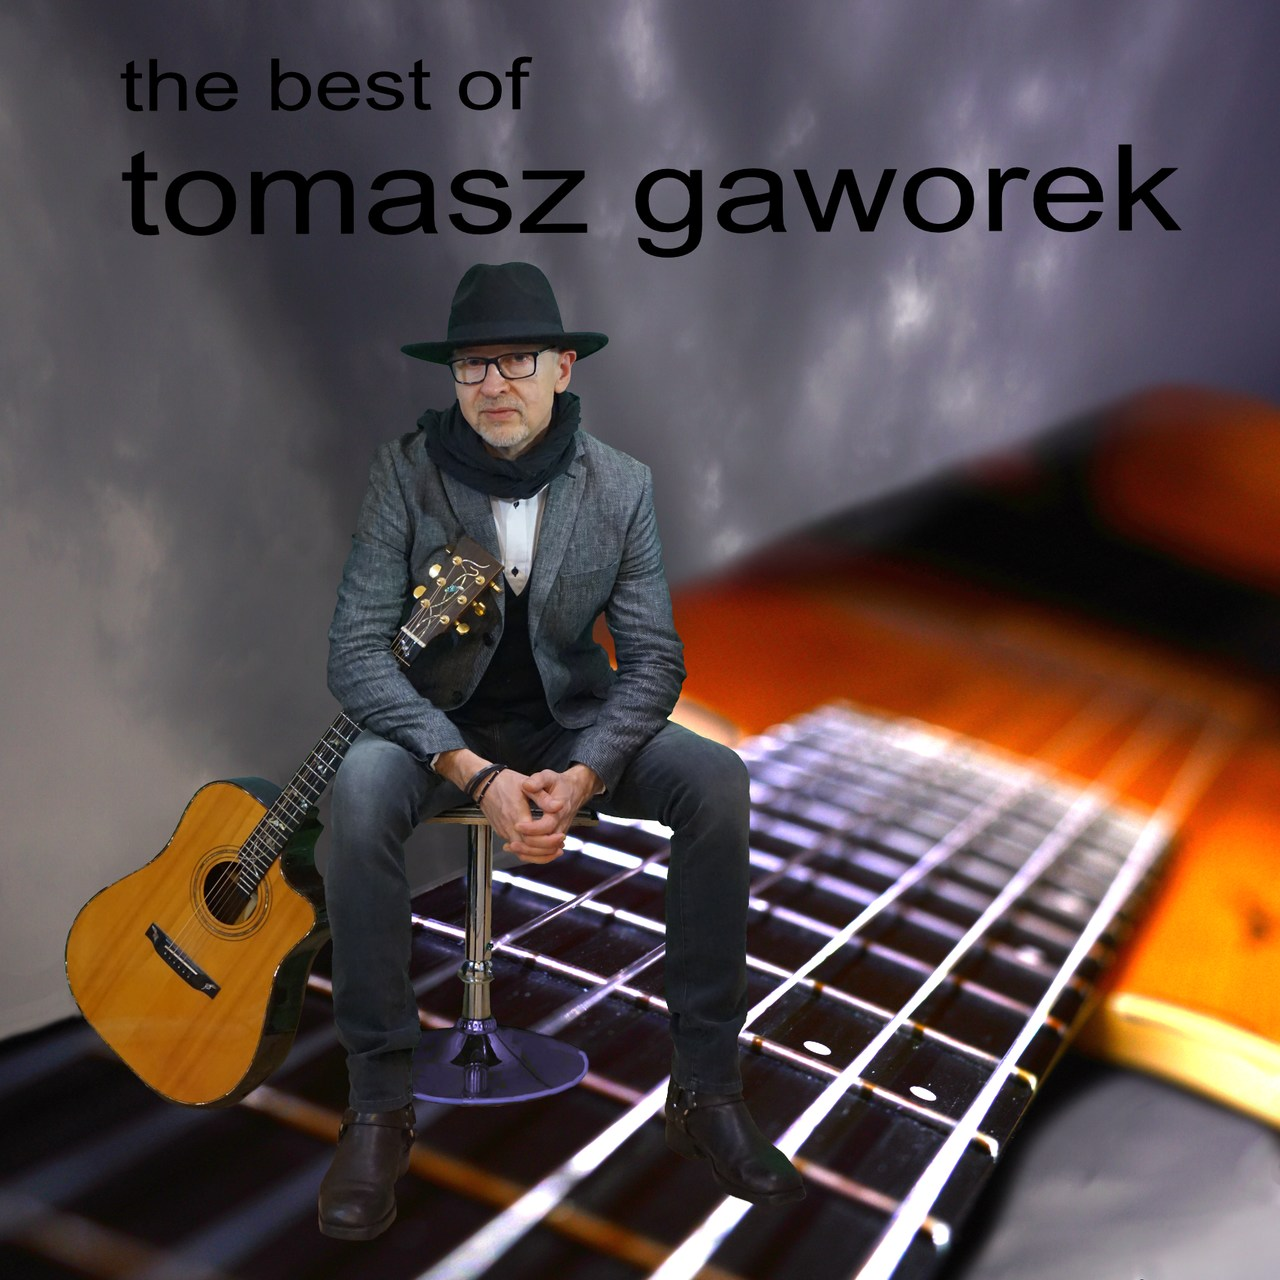 The Best of Tomasz Gaworek